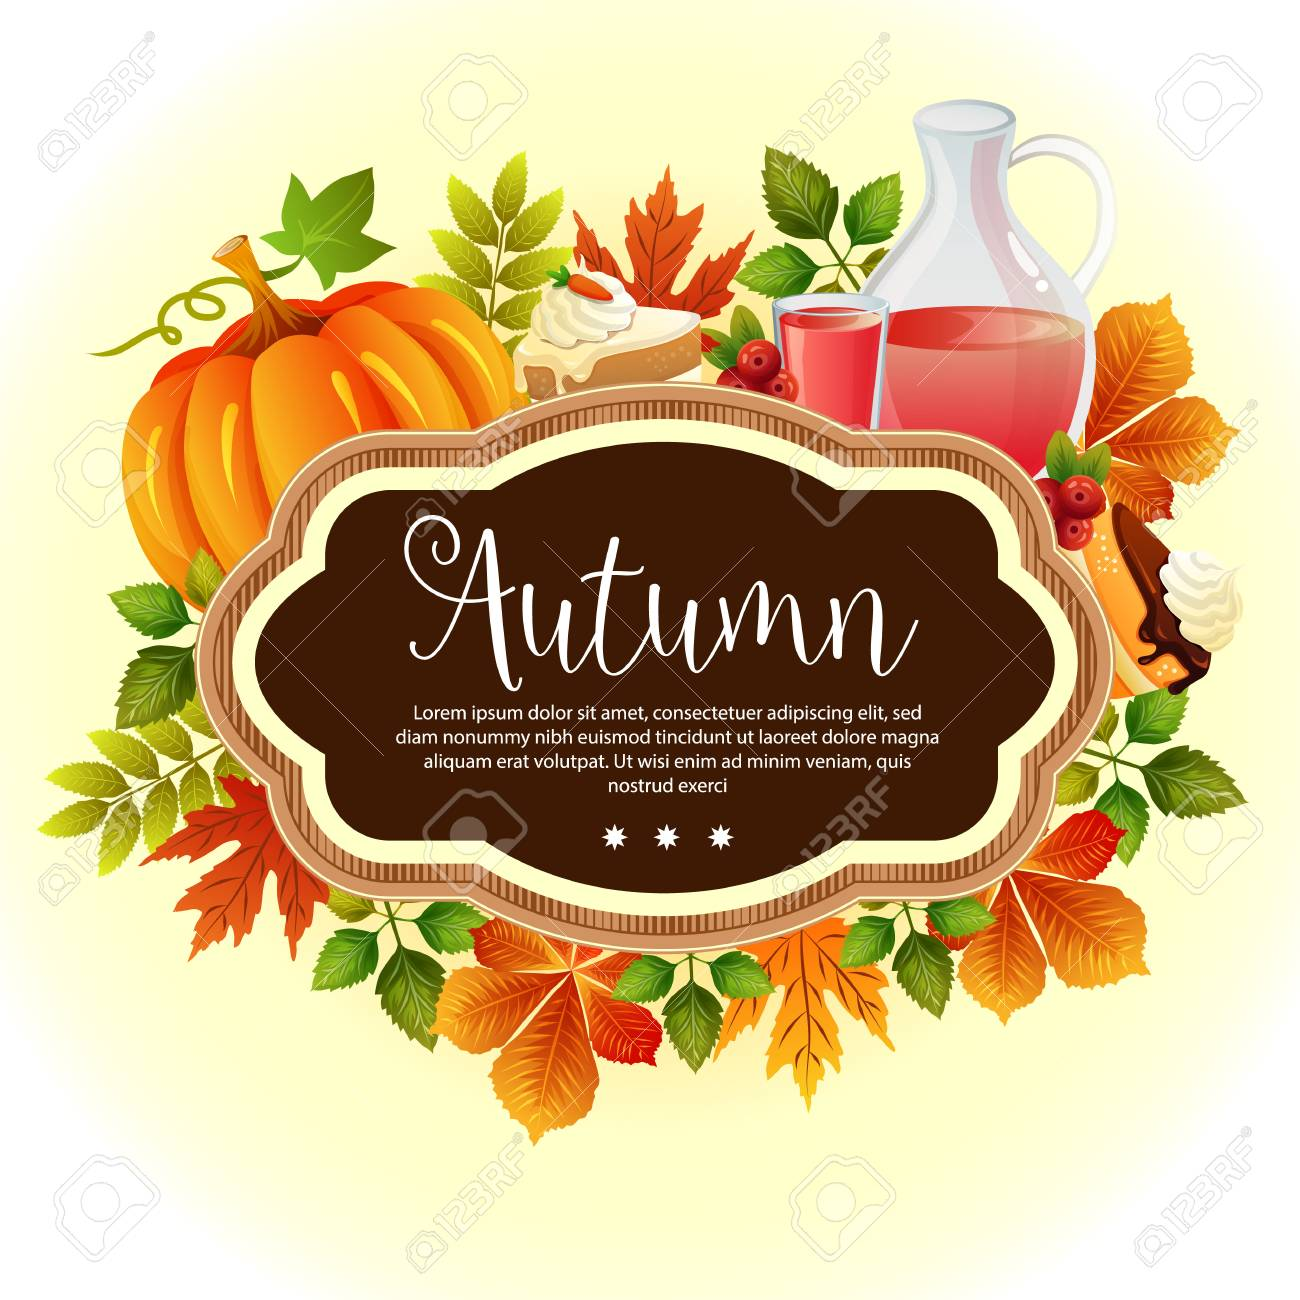 Garden Leaves Template Thanksgiving Autumn Royalty Free Cliparts ...